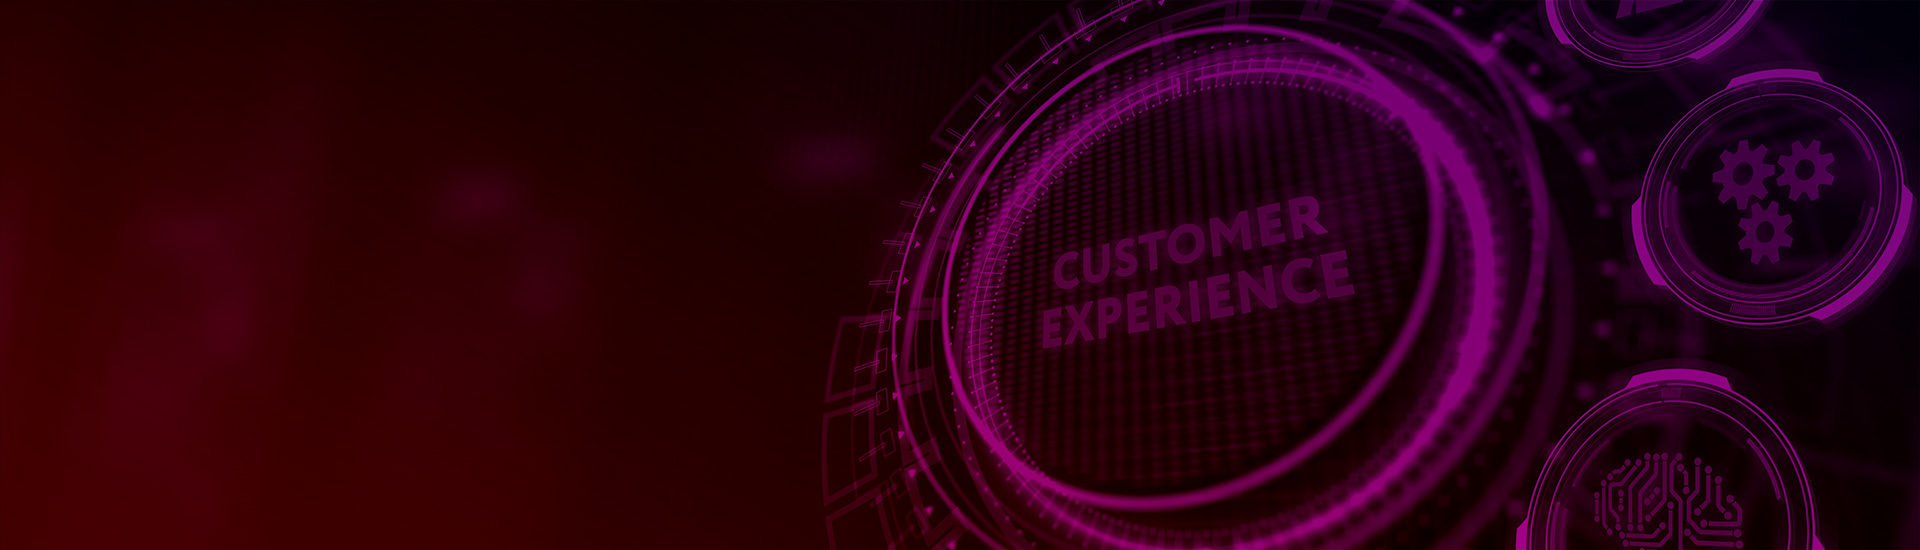 Customer experience is key to succeed in a subscriptions-based world